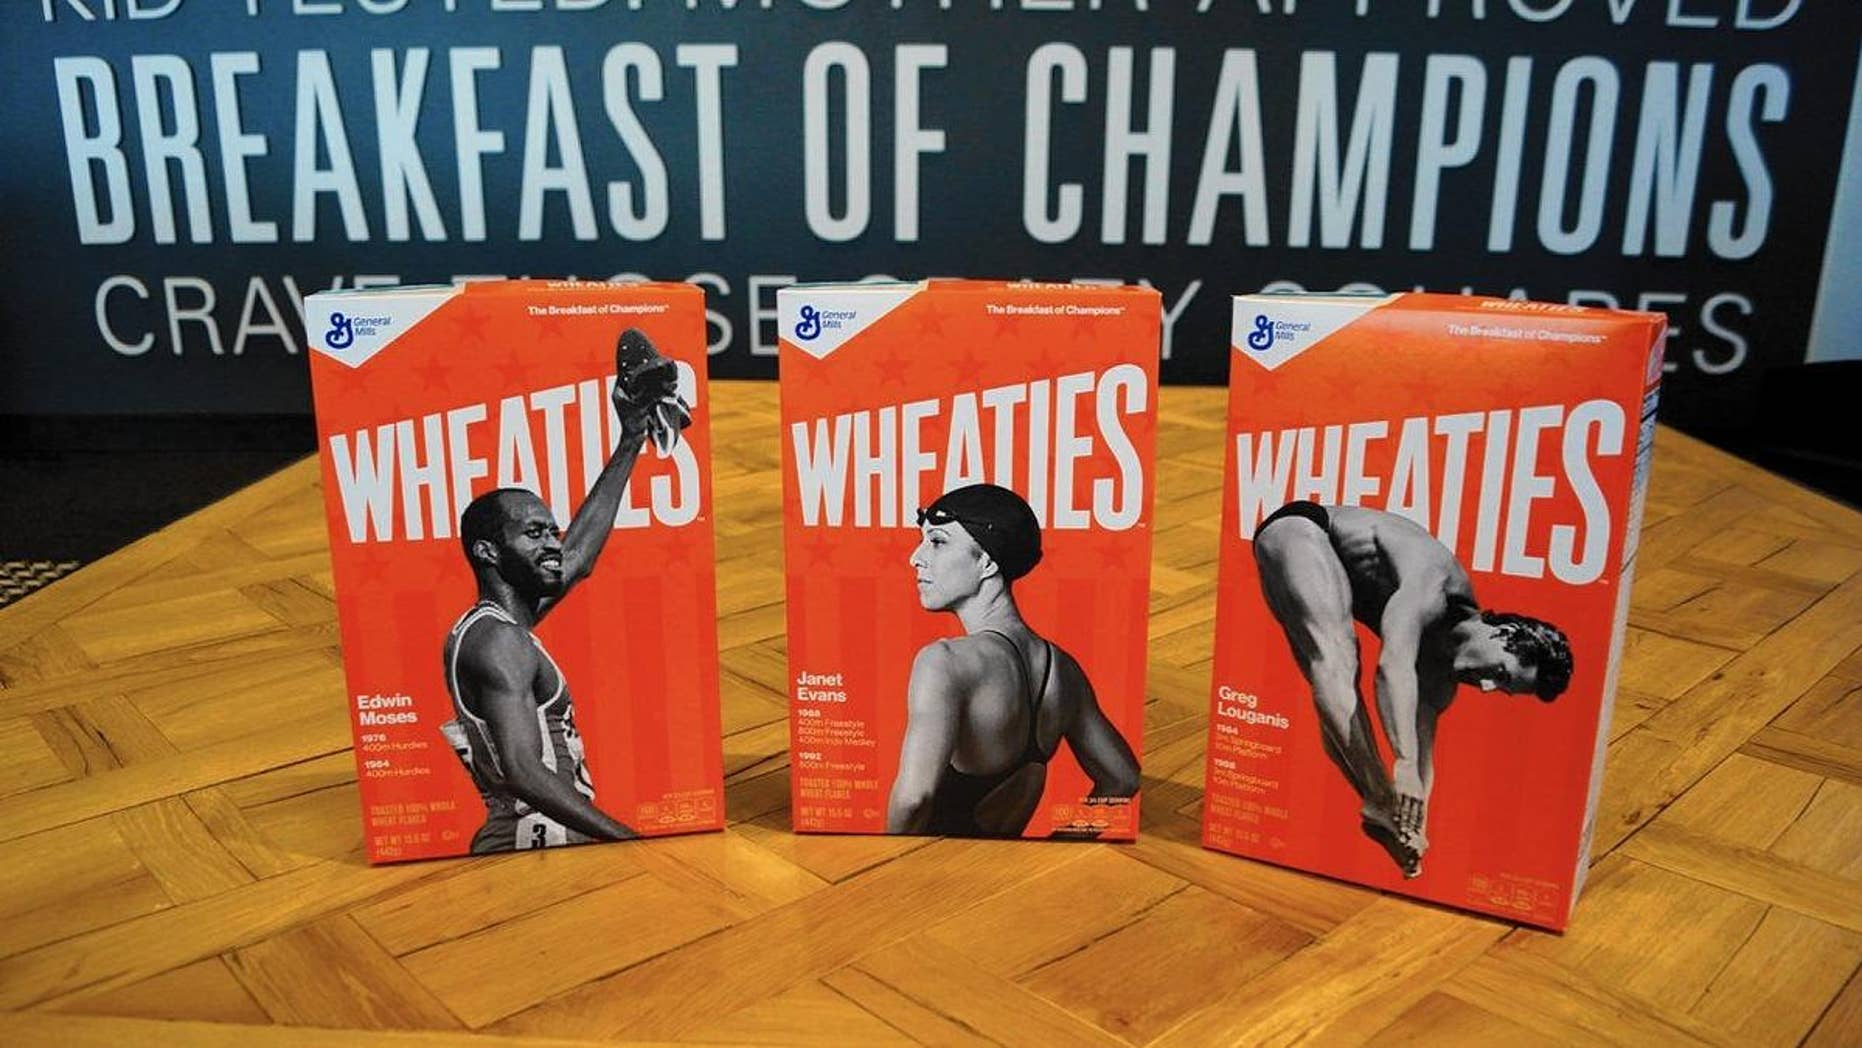 Edwin Moses, left, Janet Evans and Greg Louganis will appear on Wheaties boxes starting in May.